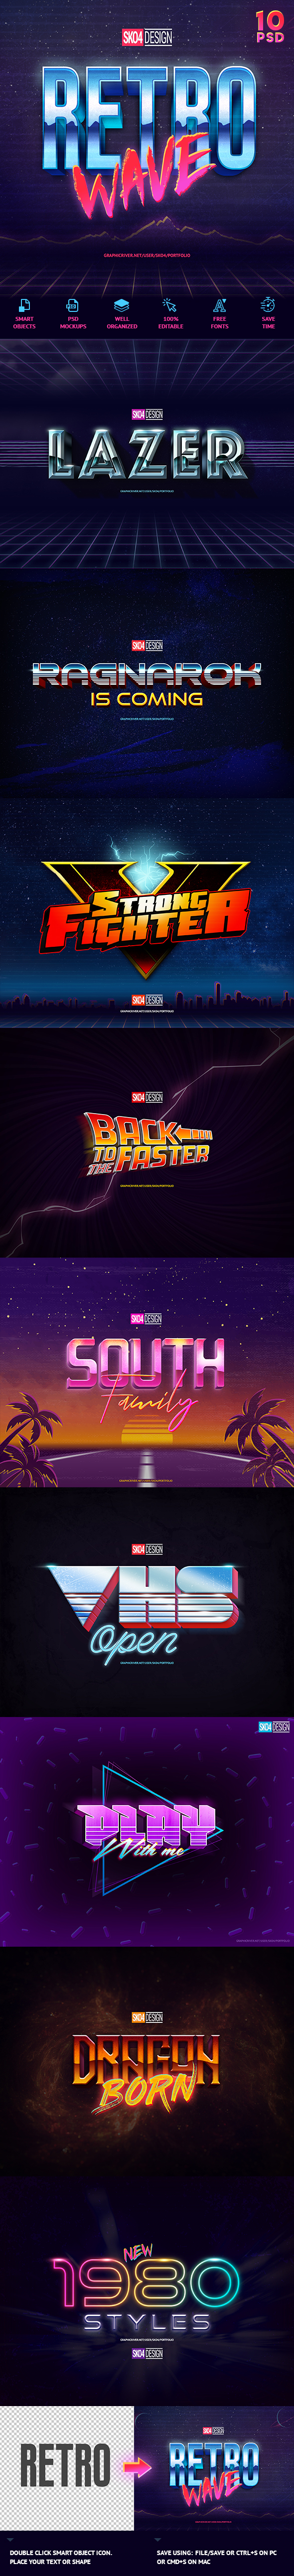 80s Text Effects - 10 PSD - Text Effects Actions